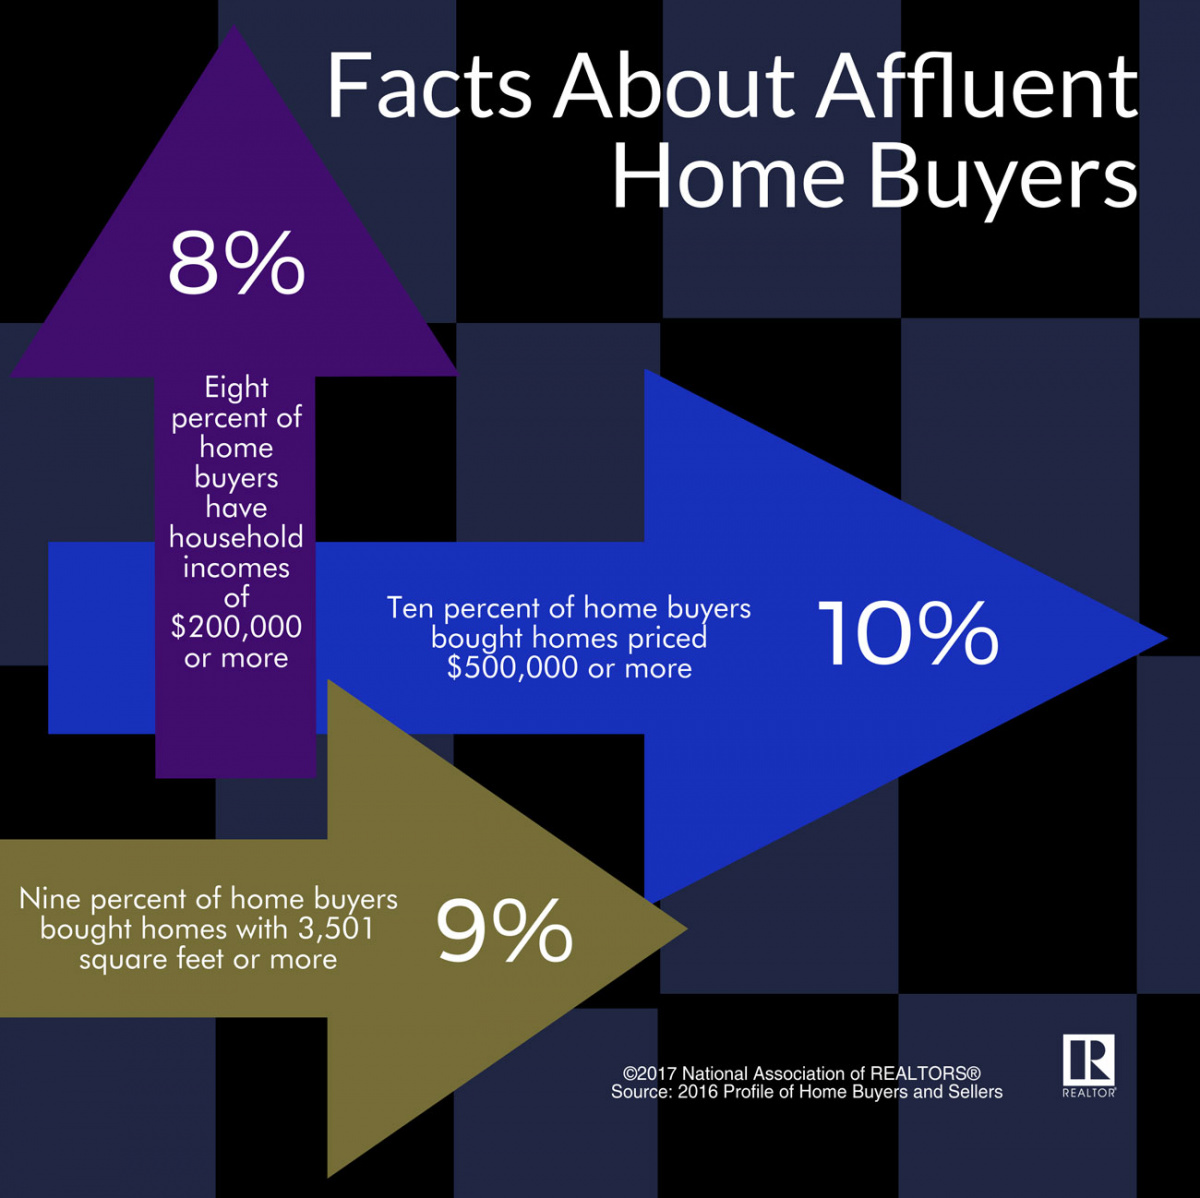 Facts About Affluent Home Buyers